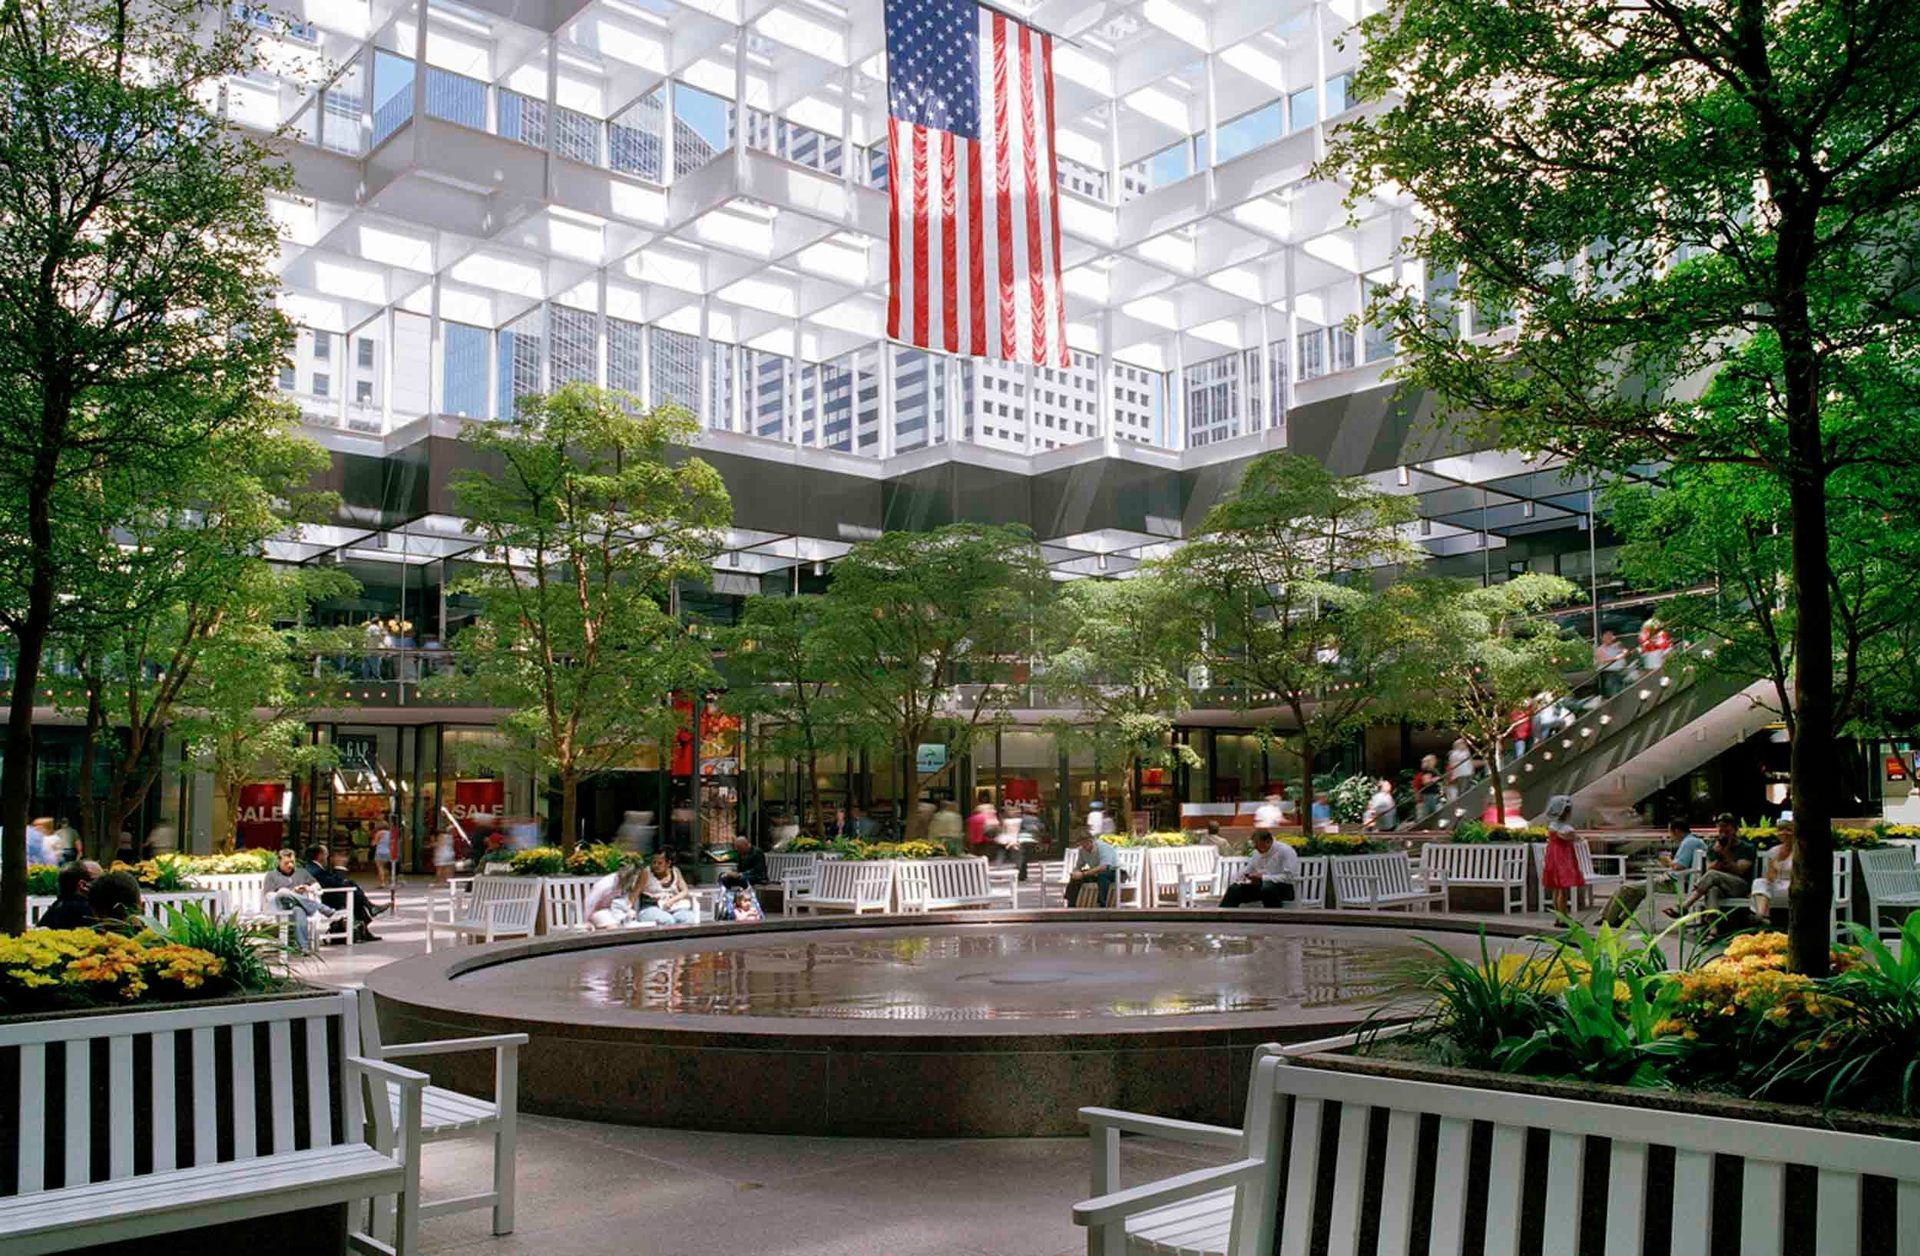 Large trees, shrubs, and flowers make this mall commons space really stand out.